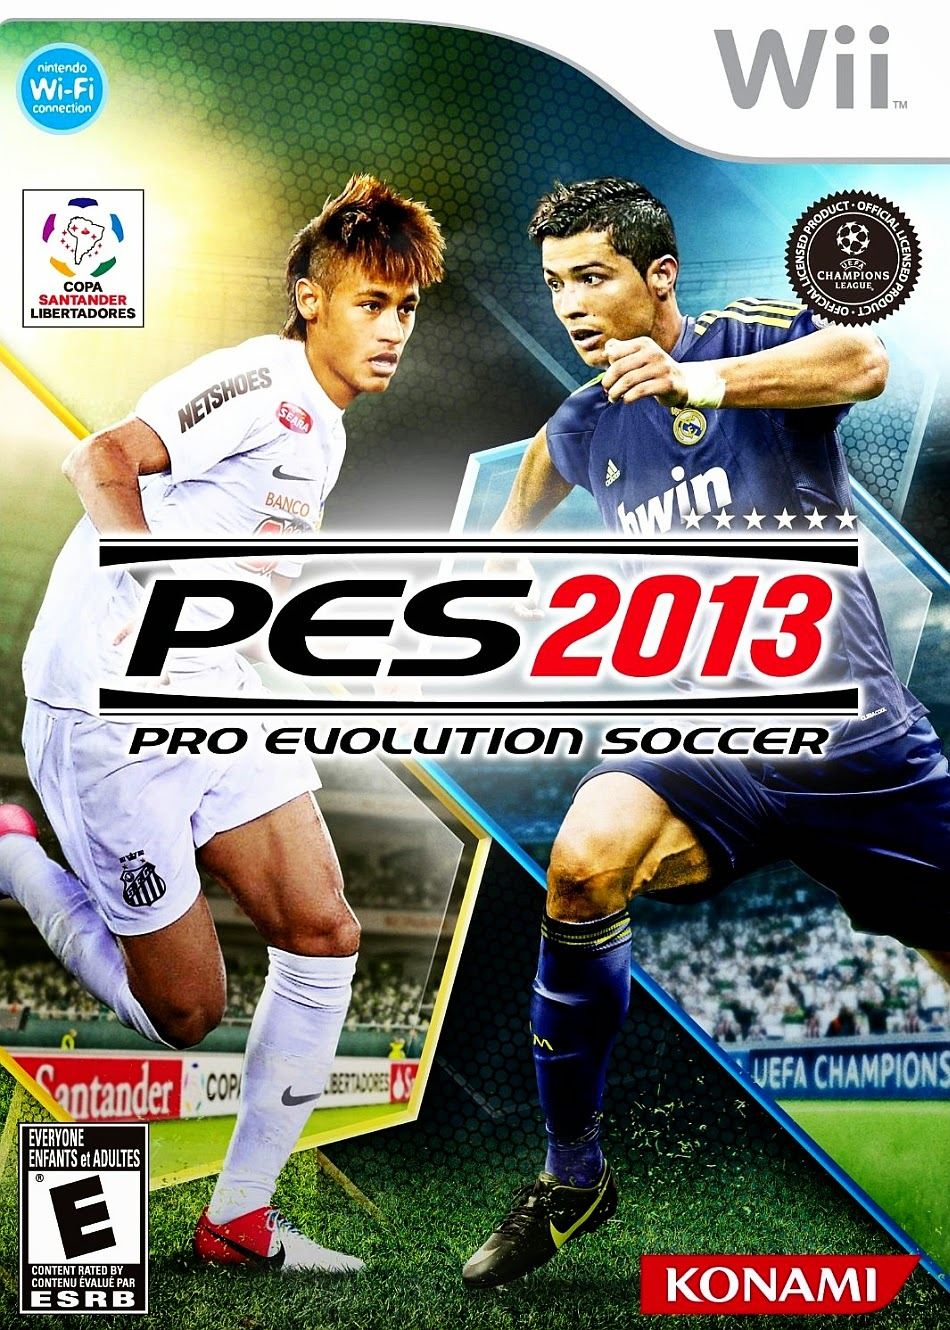 Game Patches: Pro Evolution Soccer 2013 Patch V103